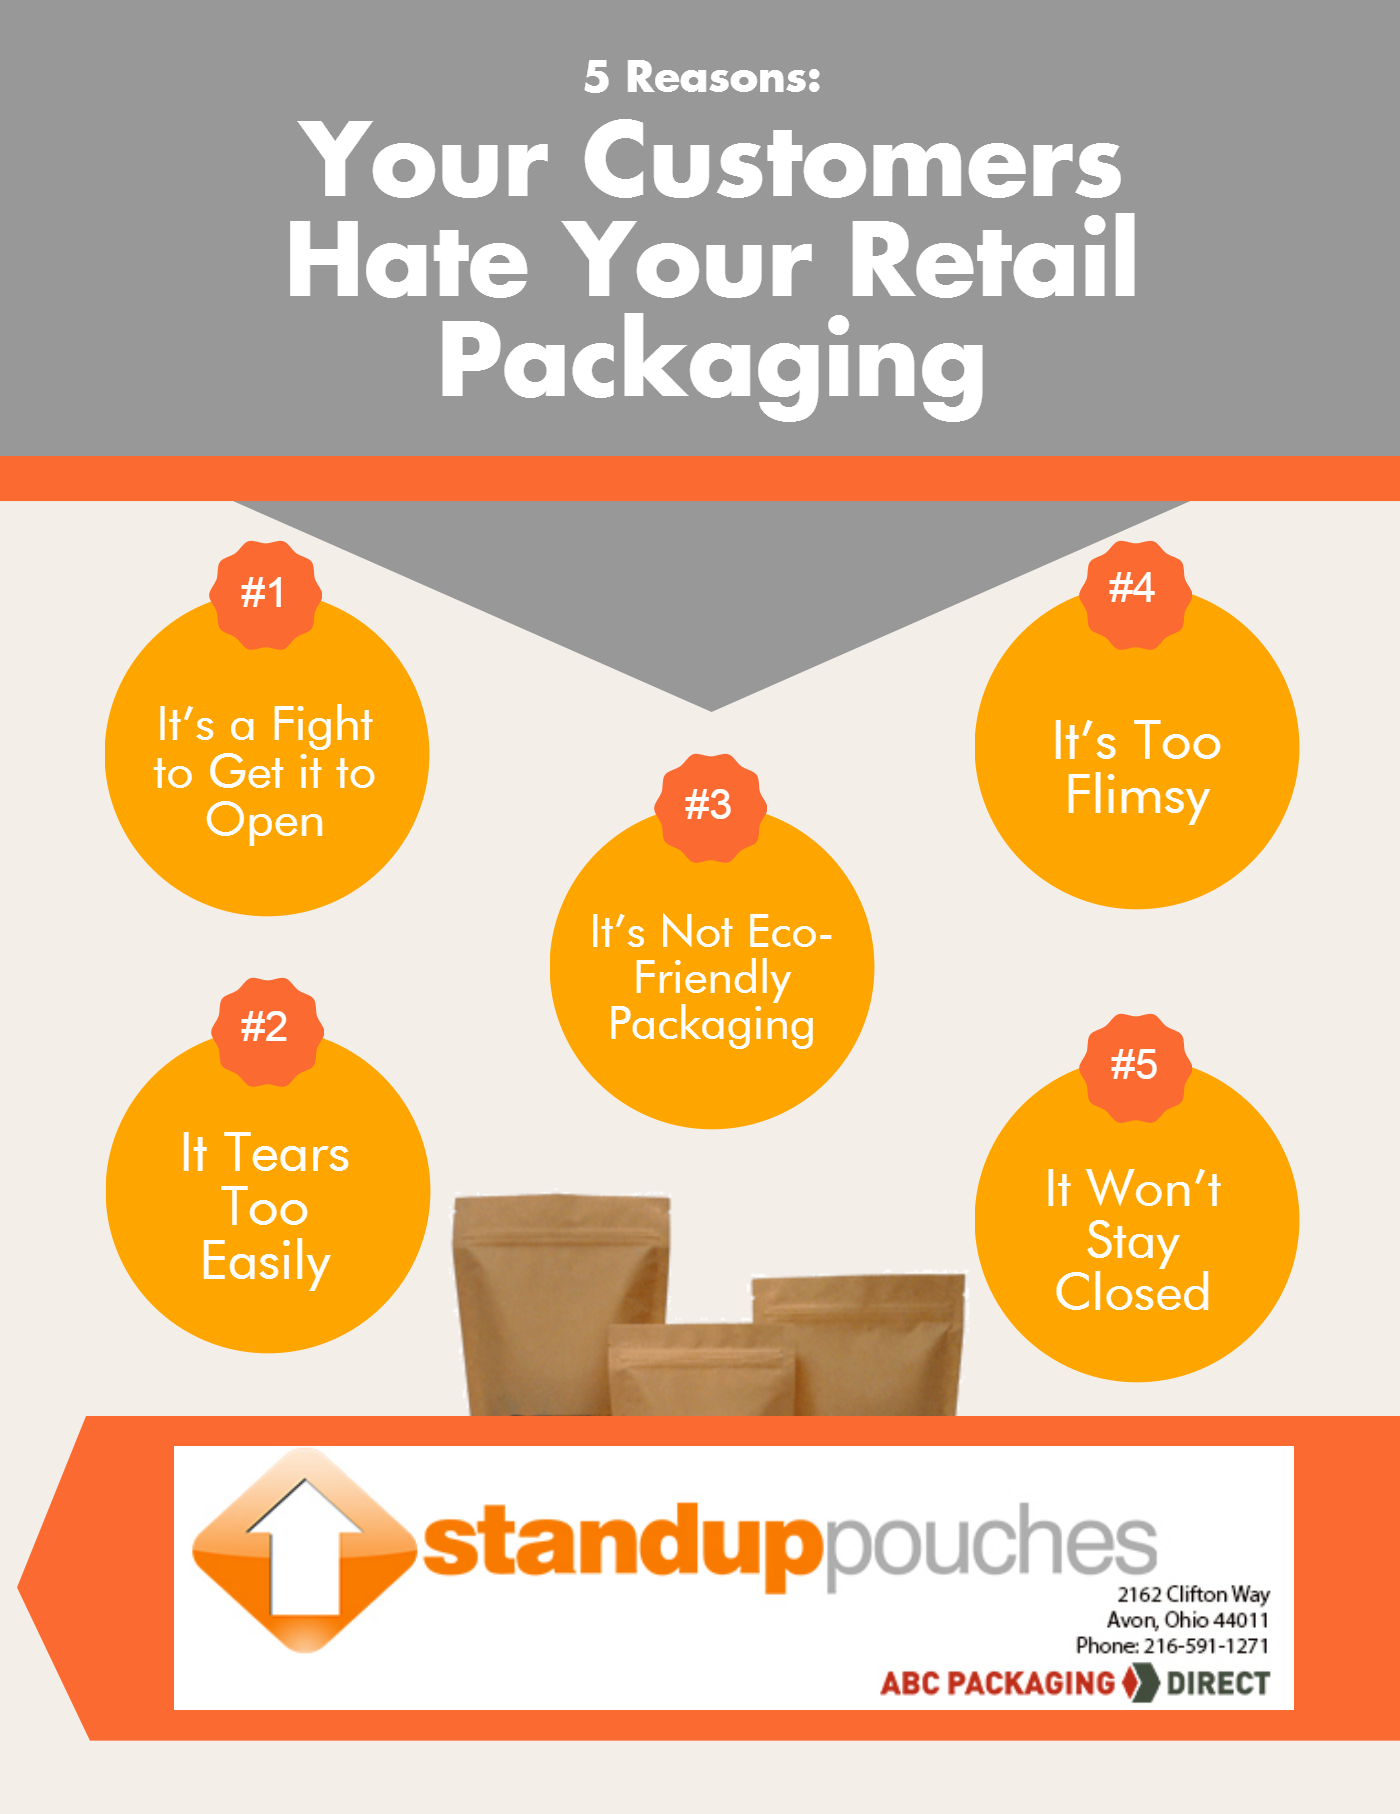 Why Customers Hate Your Packaging